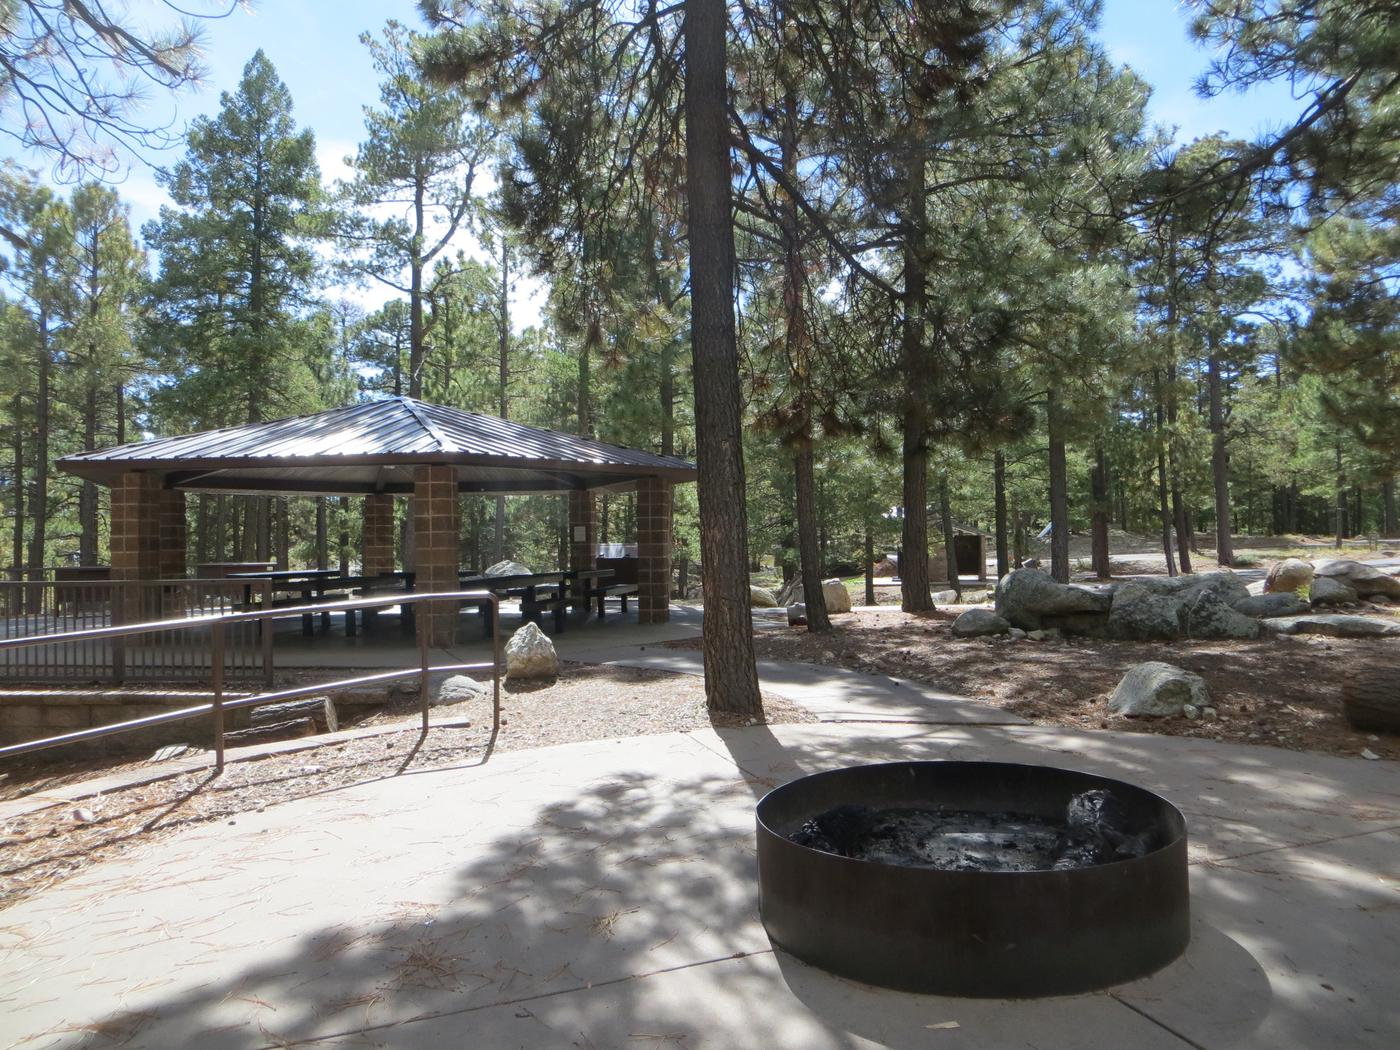 Whitetail Campground Group Site #04 featuring large ramada with multiple picnic tables, fire pit, and food storage.